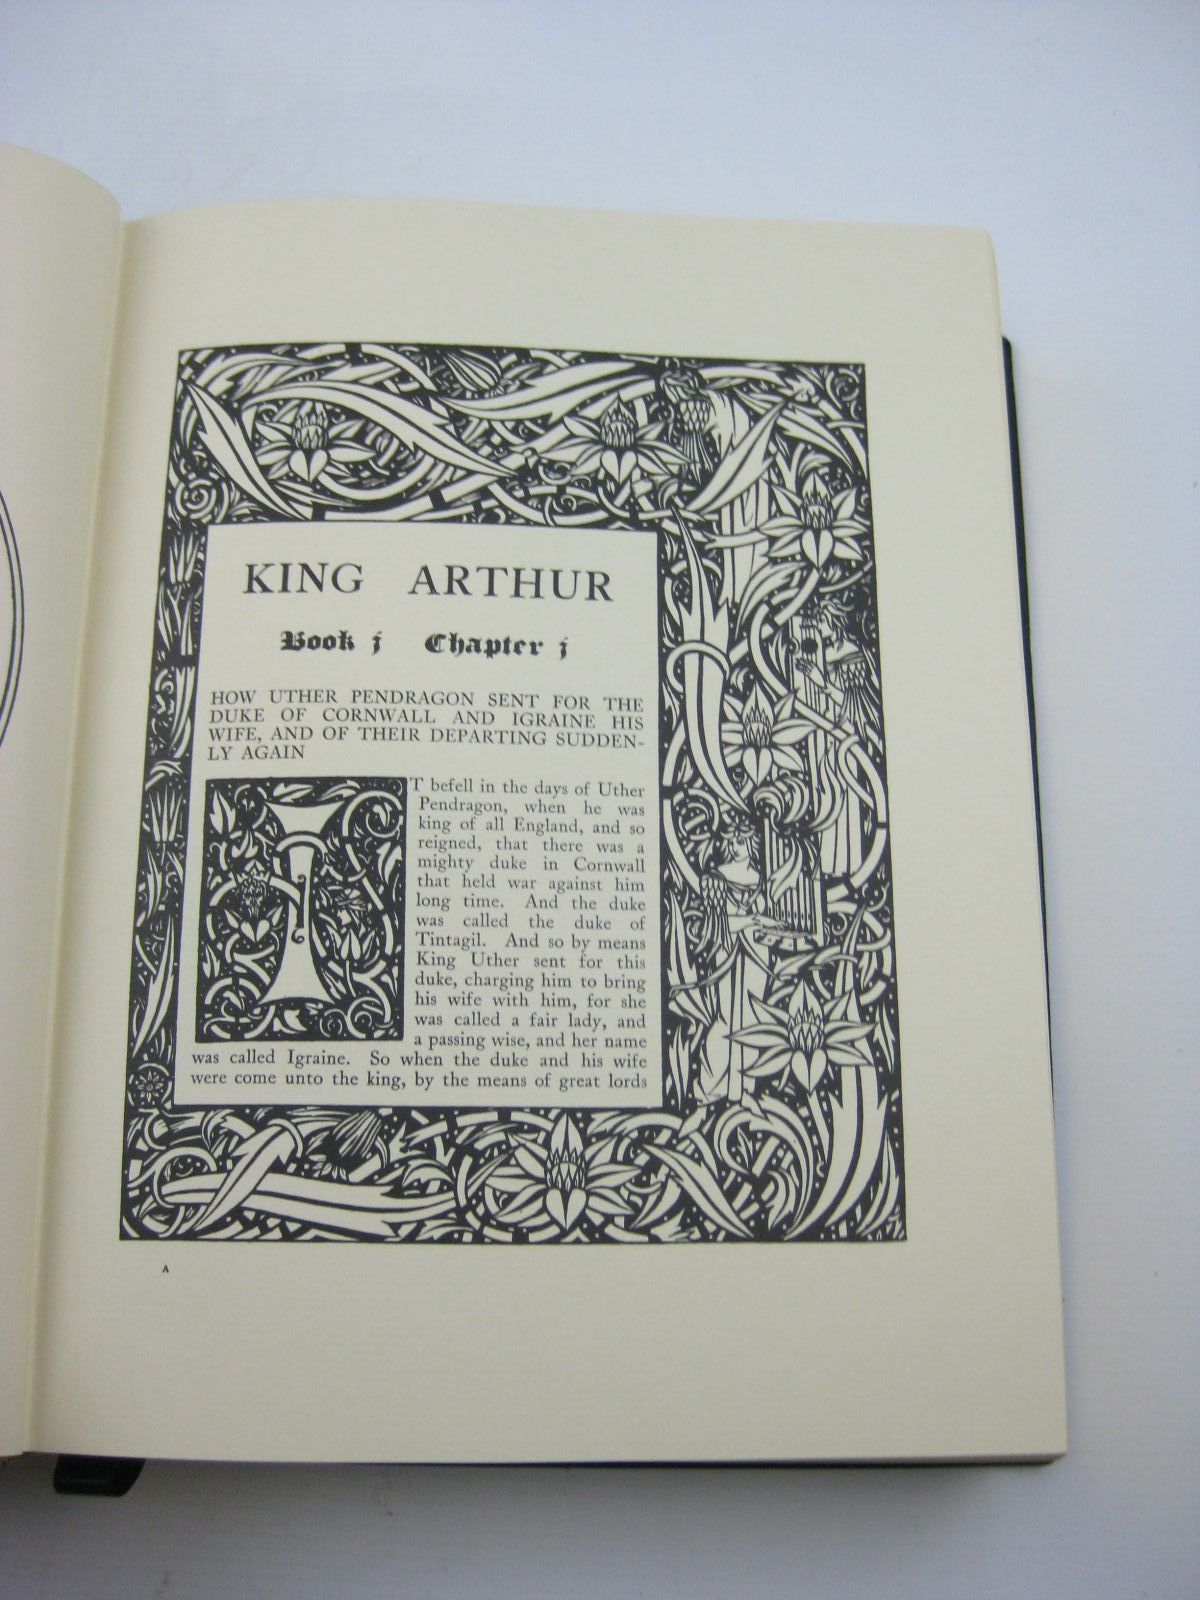 arthurian code essay The code of chivalry in the arthurian legend pages 1  most helpful essay resource ever  king arthur, arthurian legend, code of chivalry, excalibur.